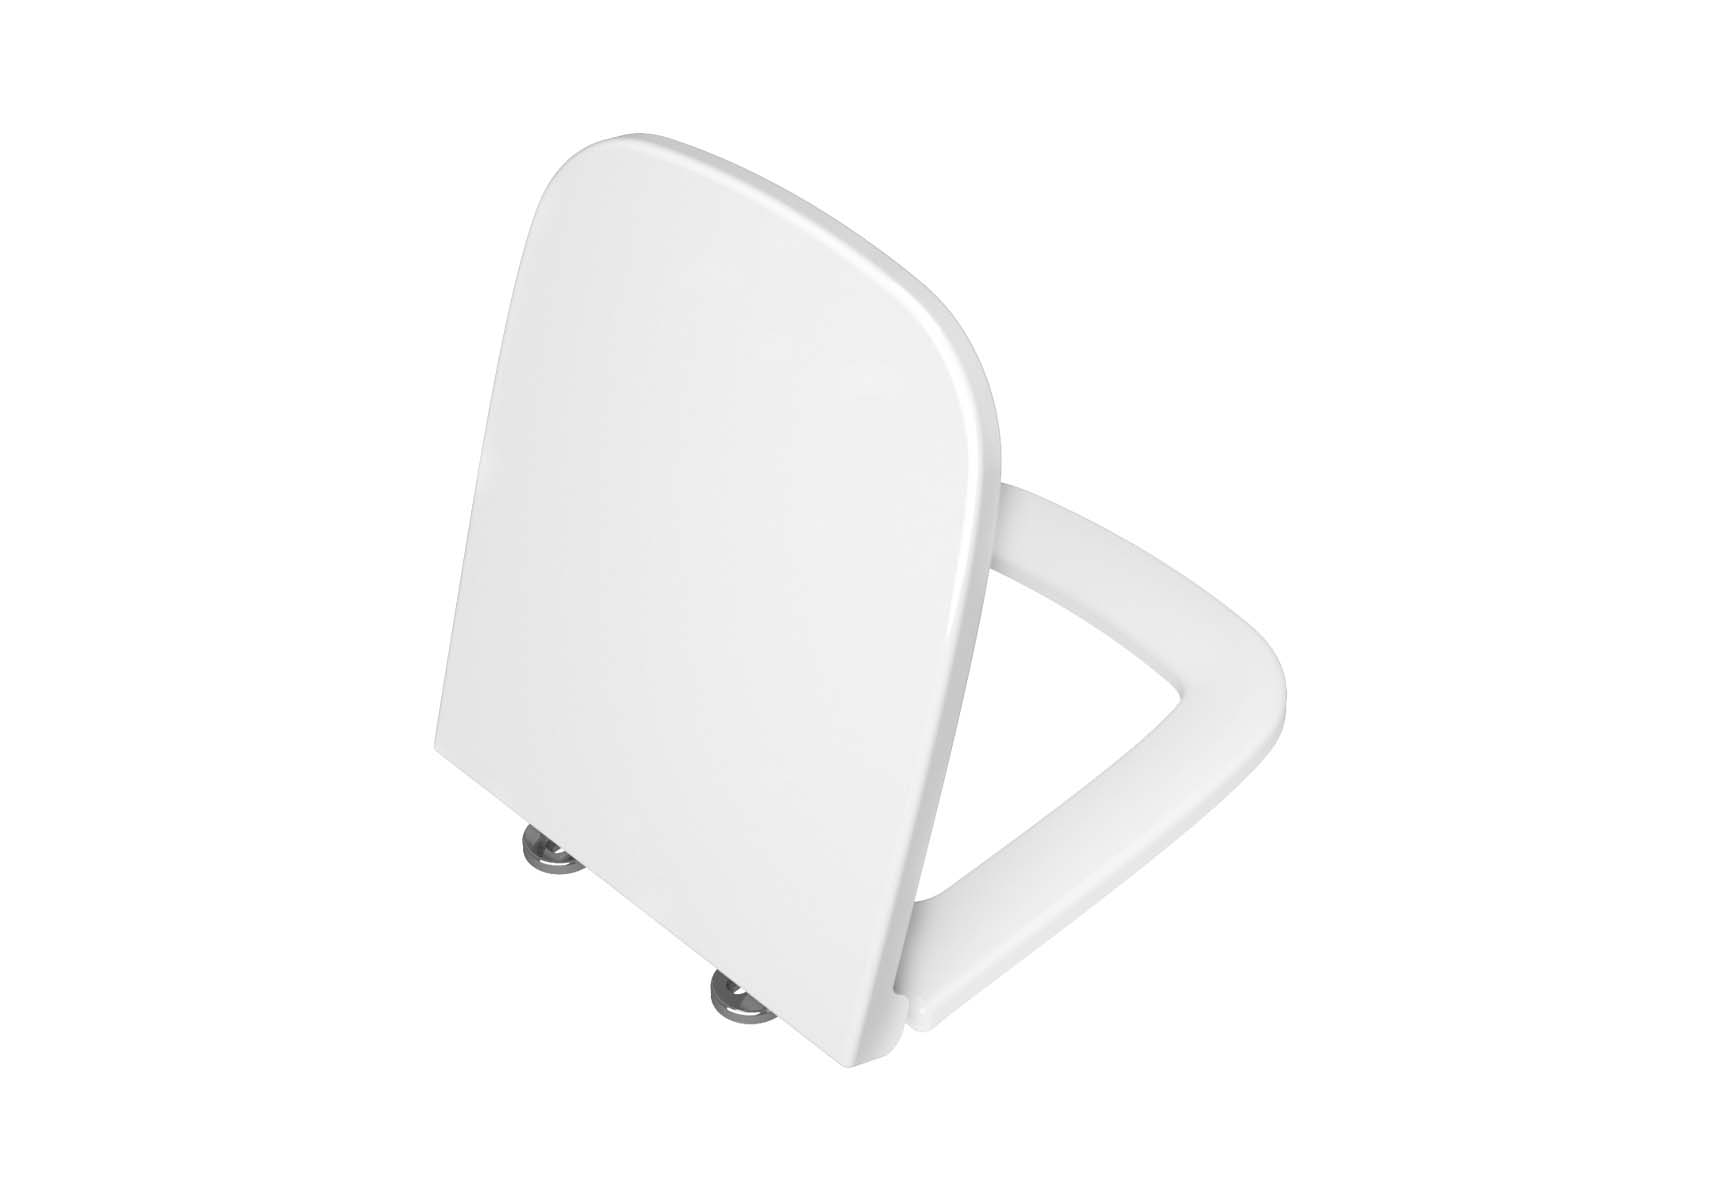 WC Seat, Pp,,Detechable Plastic Hinge, Top Fixing